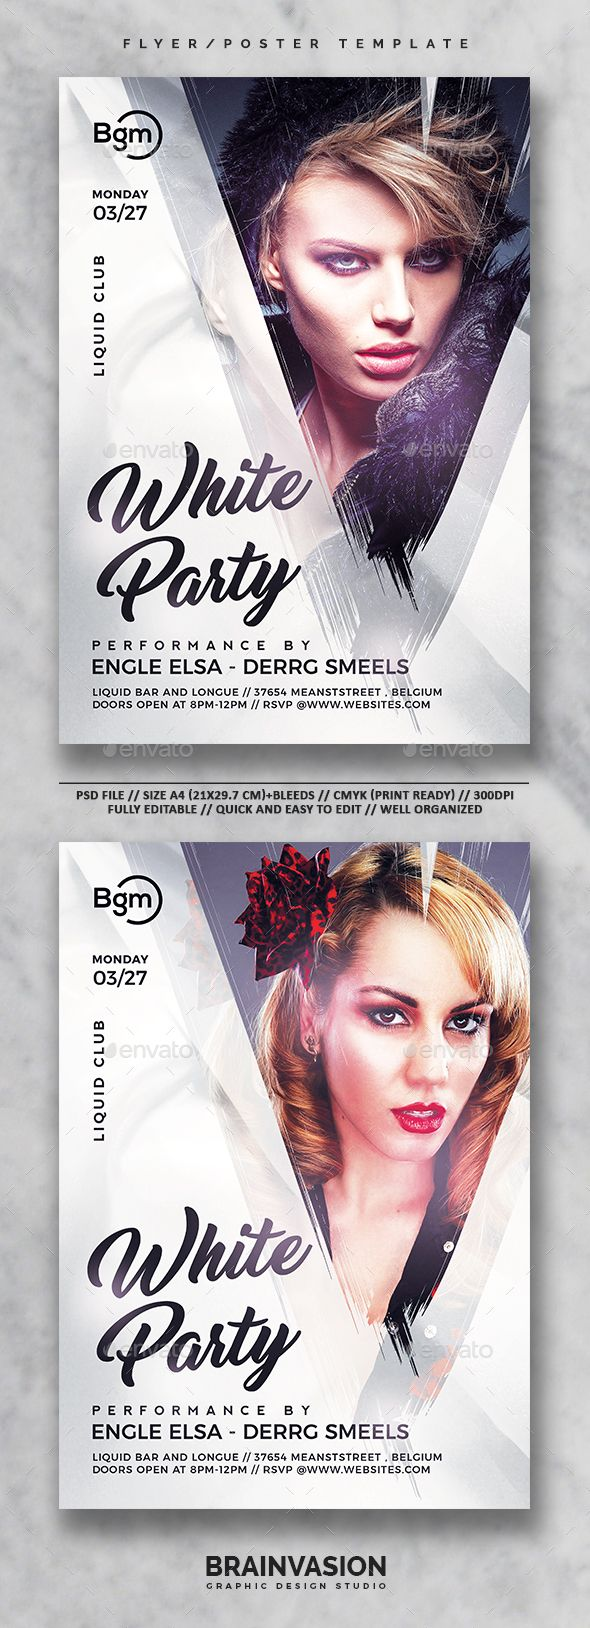 White Party Flyer/Poster Template Vol.01 | Party flyer, Club poster ...